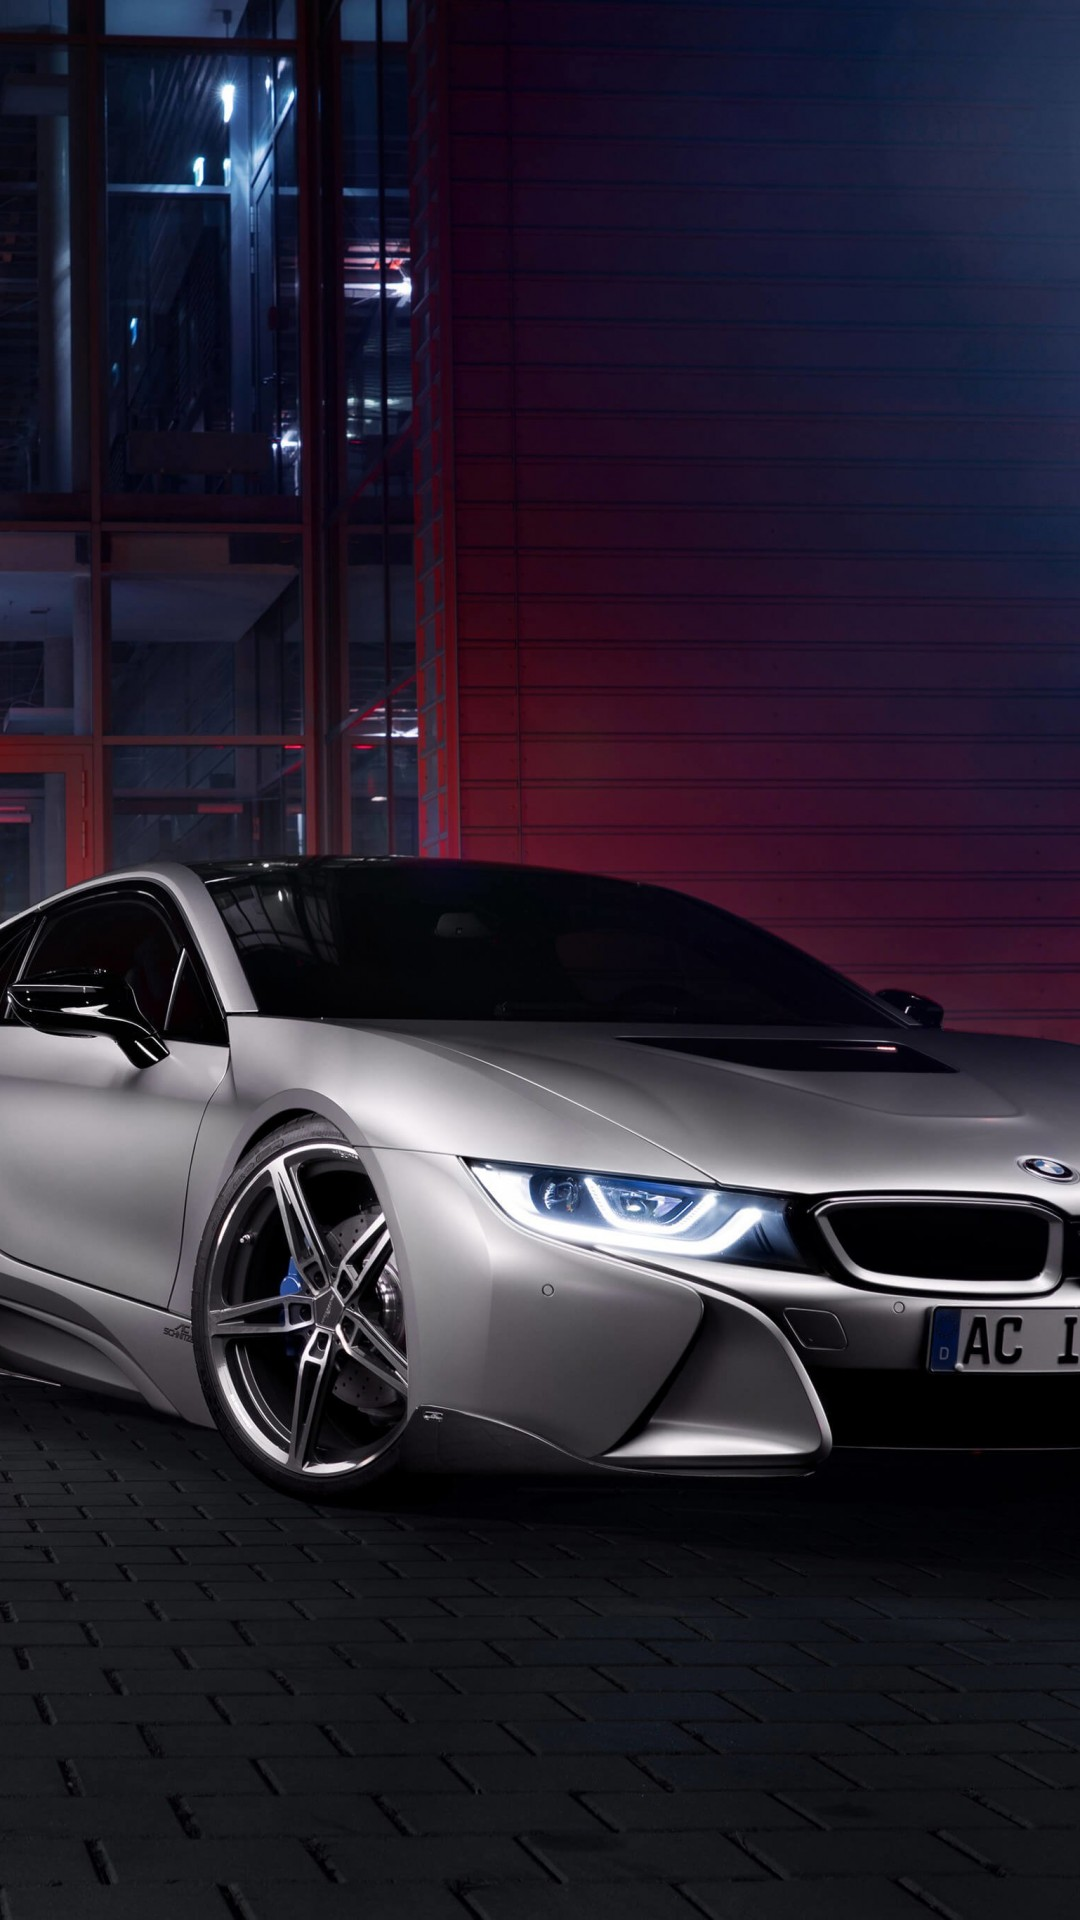 BMW i8 designed by AC Schnitzer Wallpaper for SAMSUNG Galaxy S4